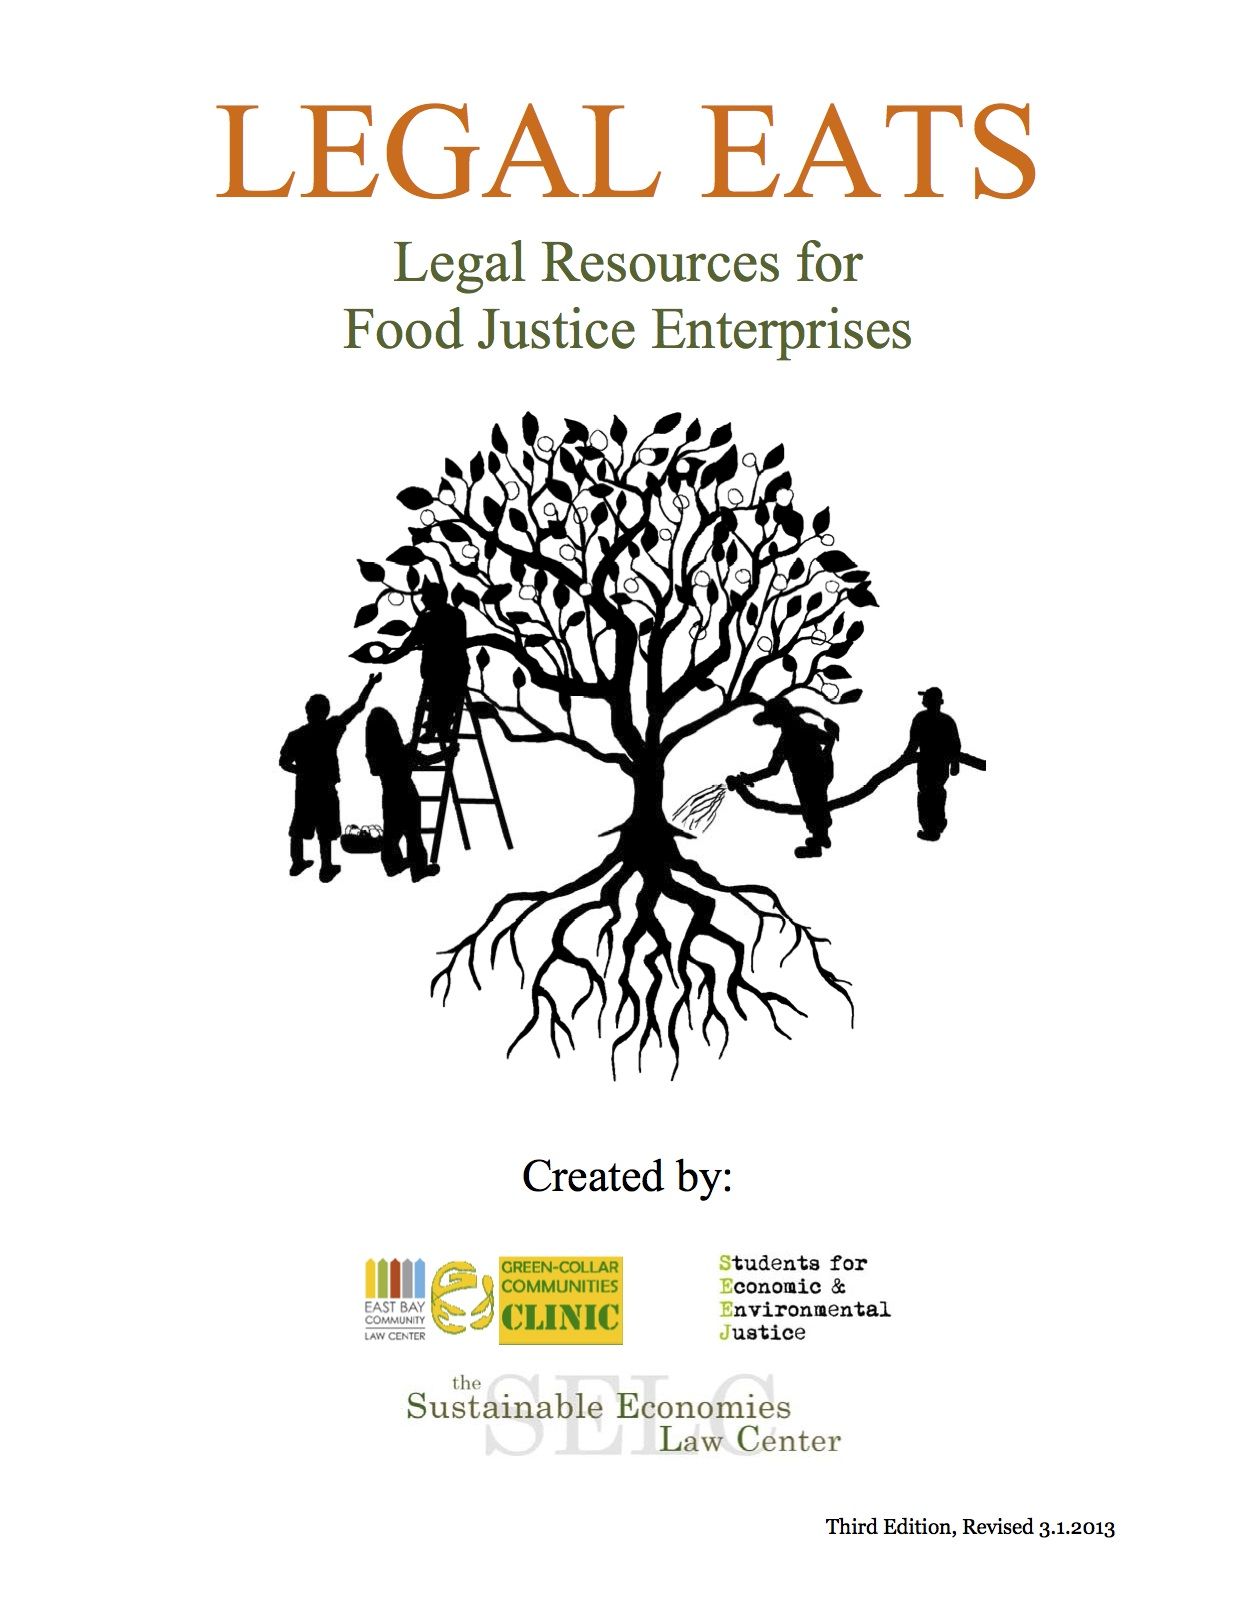 Legal-Eats-Handbook-Cover.jpg